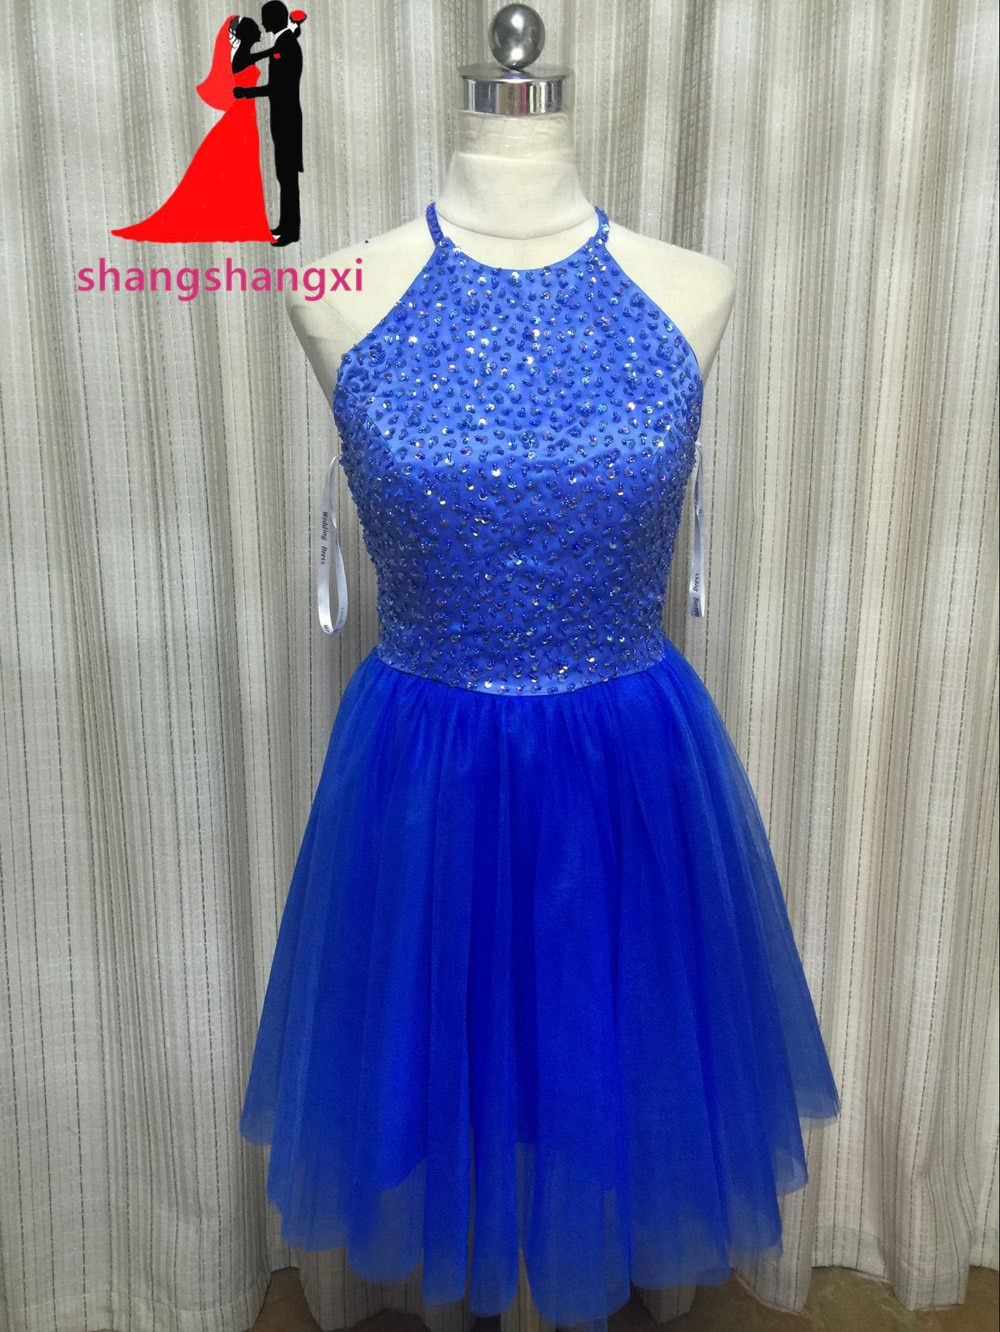 New RoyalBlue Ball Gowns Cocktail Dresses 2018 Sequins Beads Short Prom Dress Formal Party Homecoming Dresses